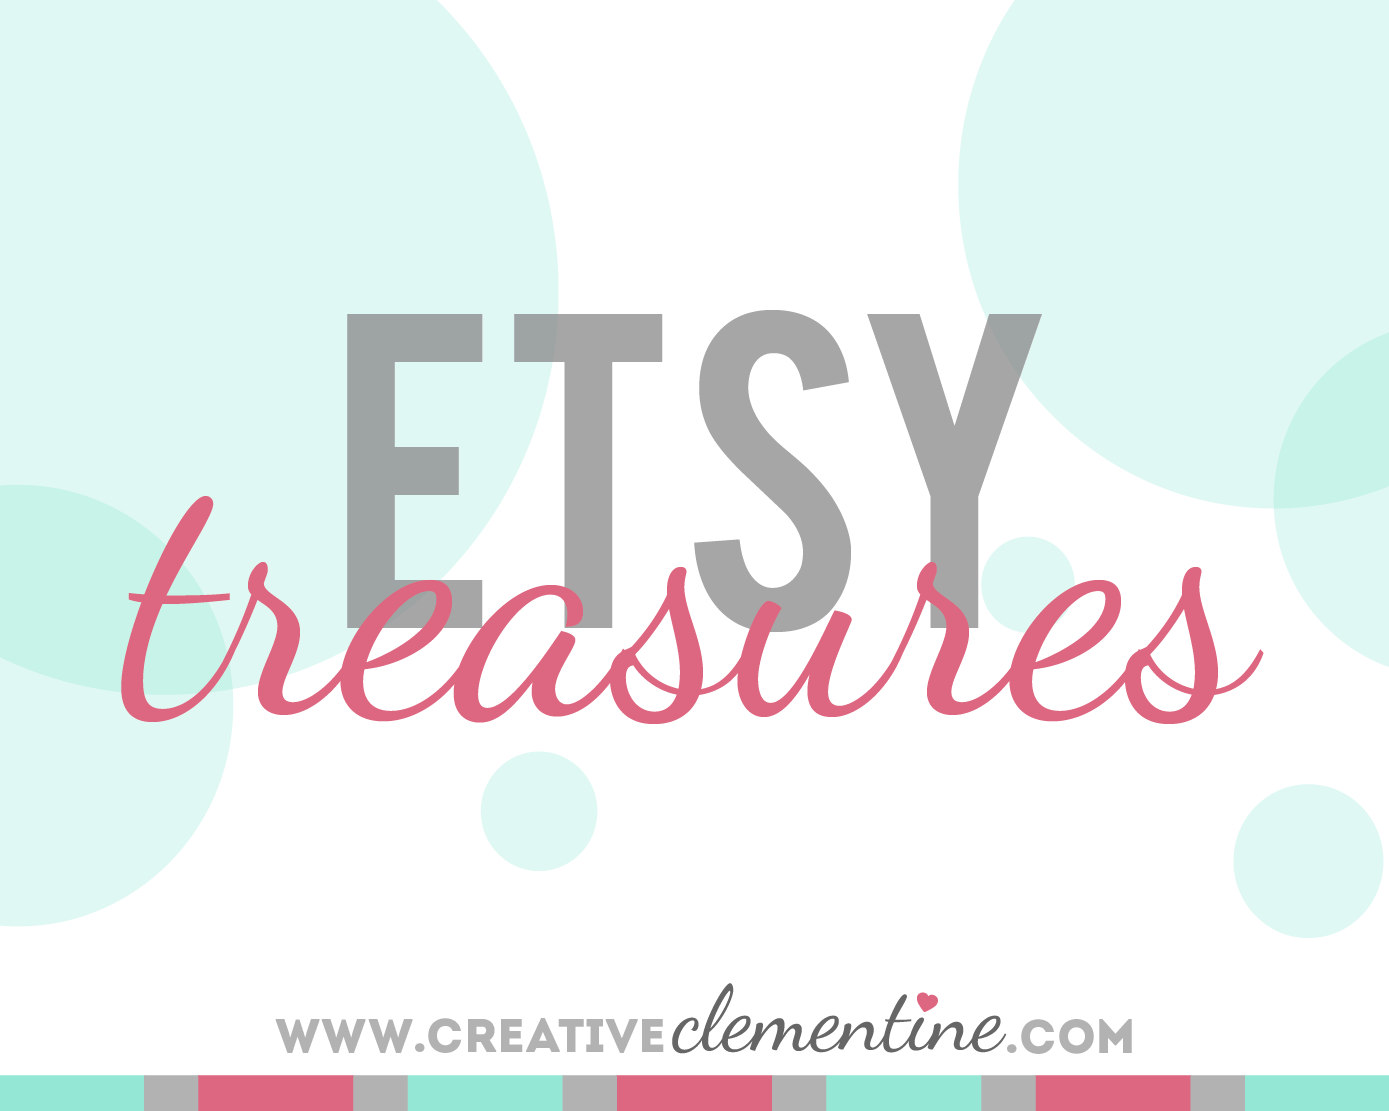 Etsy Treasury via Creative Clementine